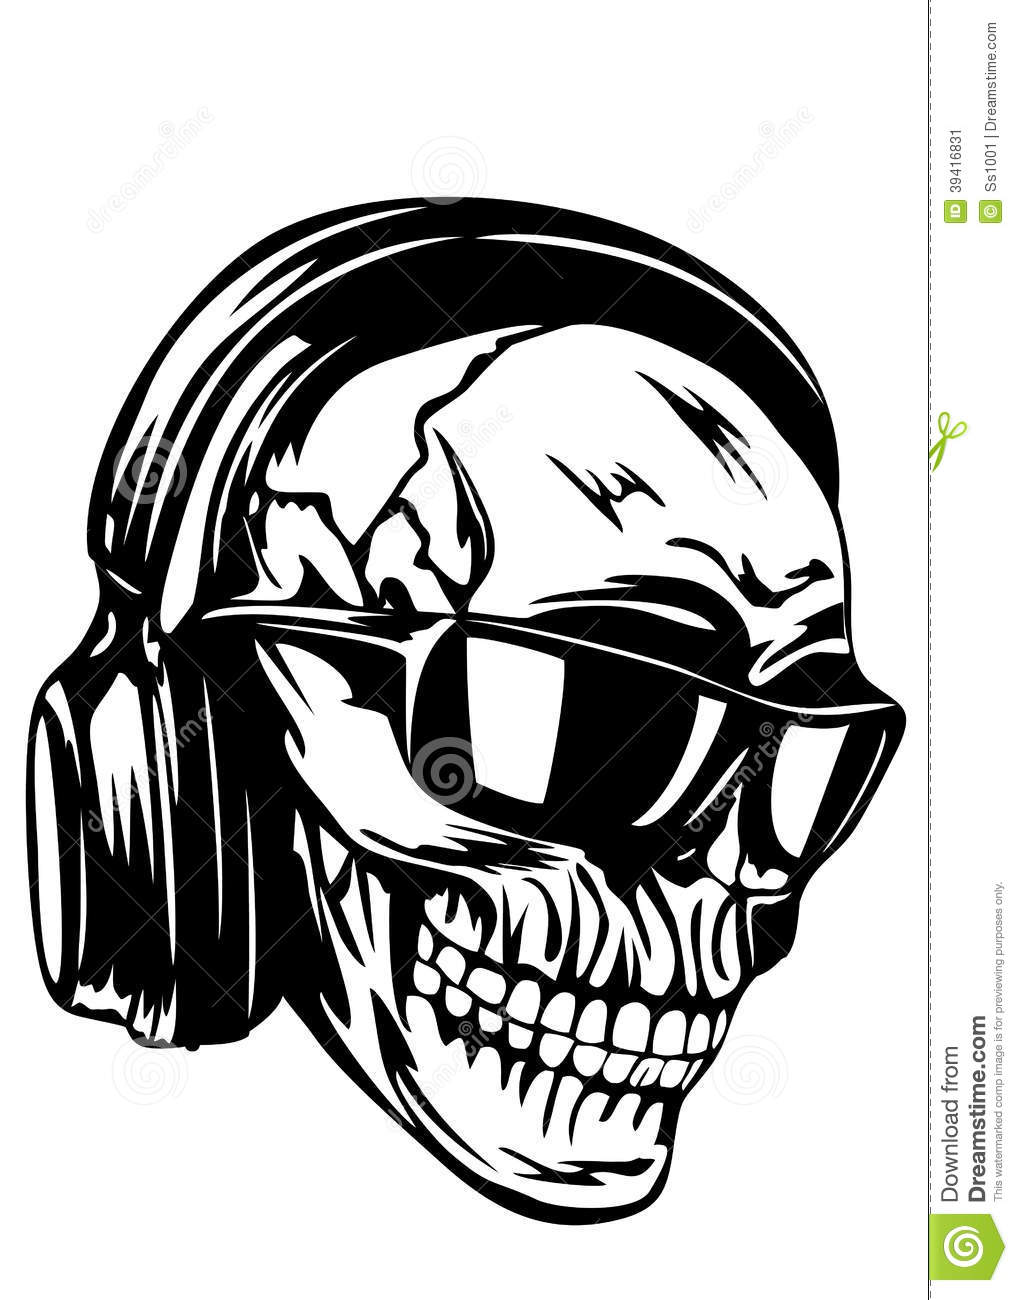 Line Art Headphones : Skull in headphones and sunglasses stock vector image